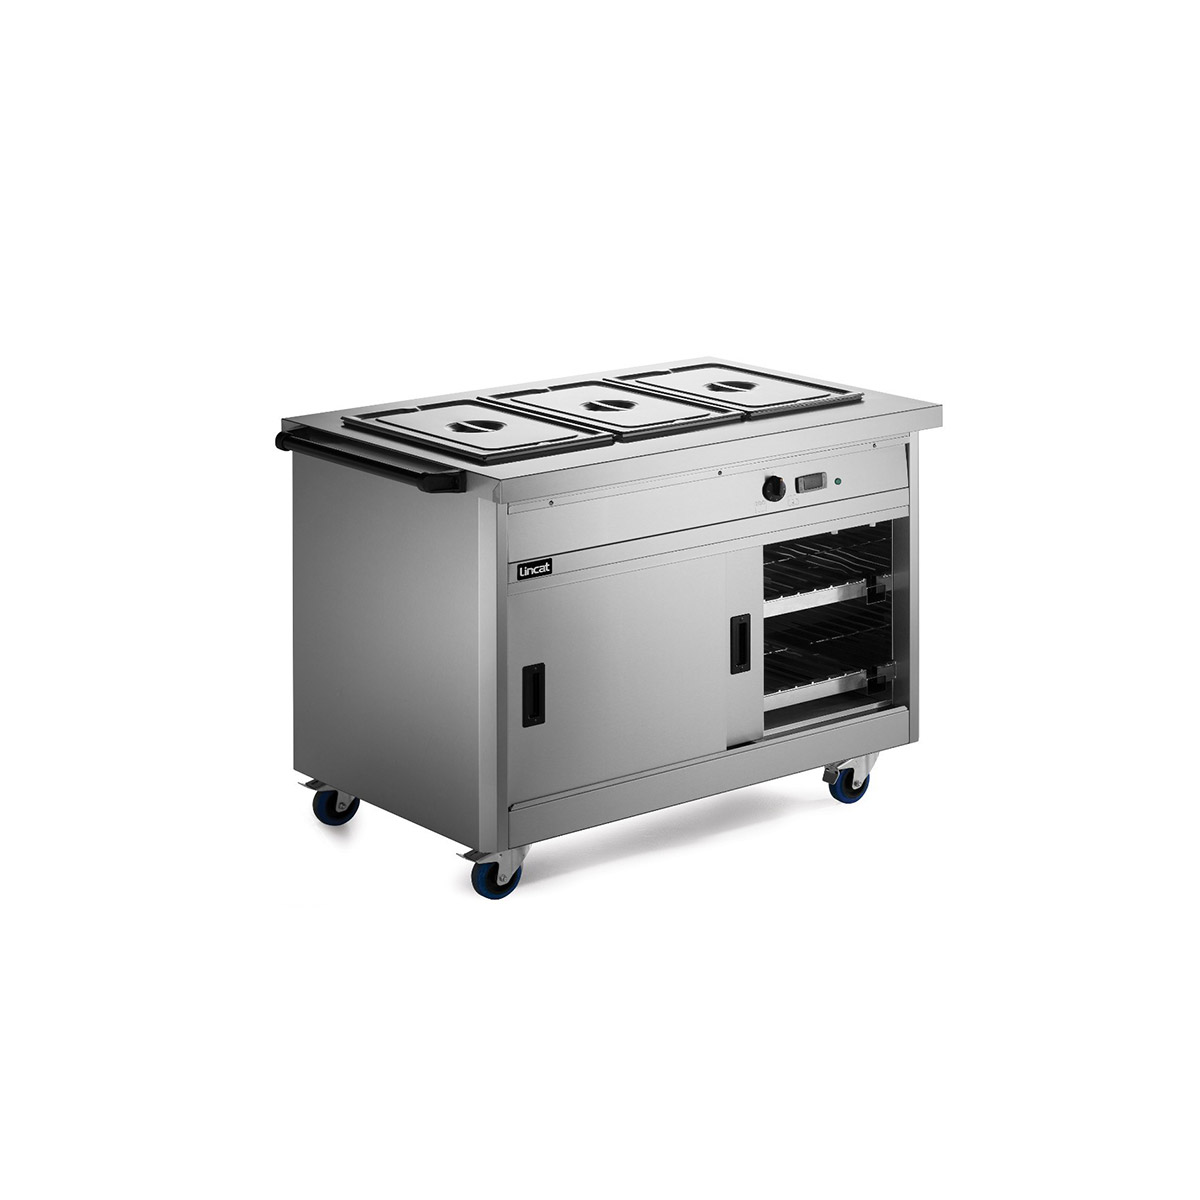 P8B3 - Lincat Panther 800 Series Free-standing Hot Cupboard - Bain Marie Top - 3GN - W 1205 mm - 2.8 kW